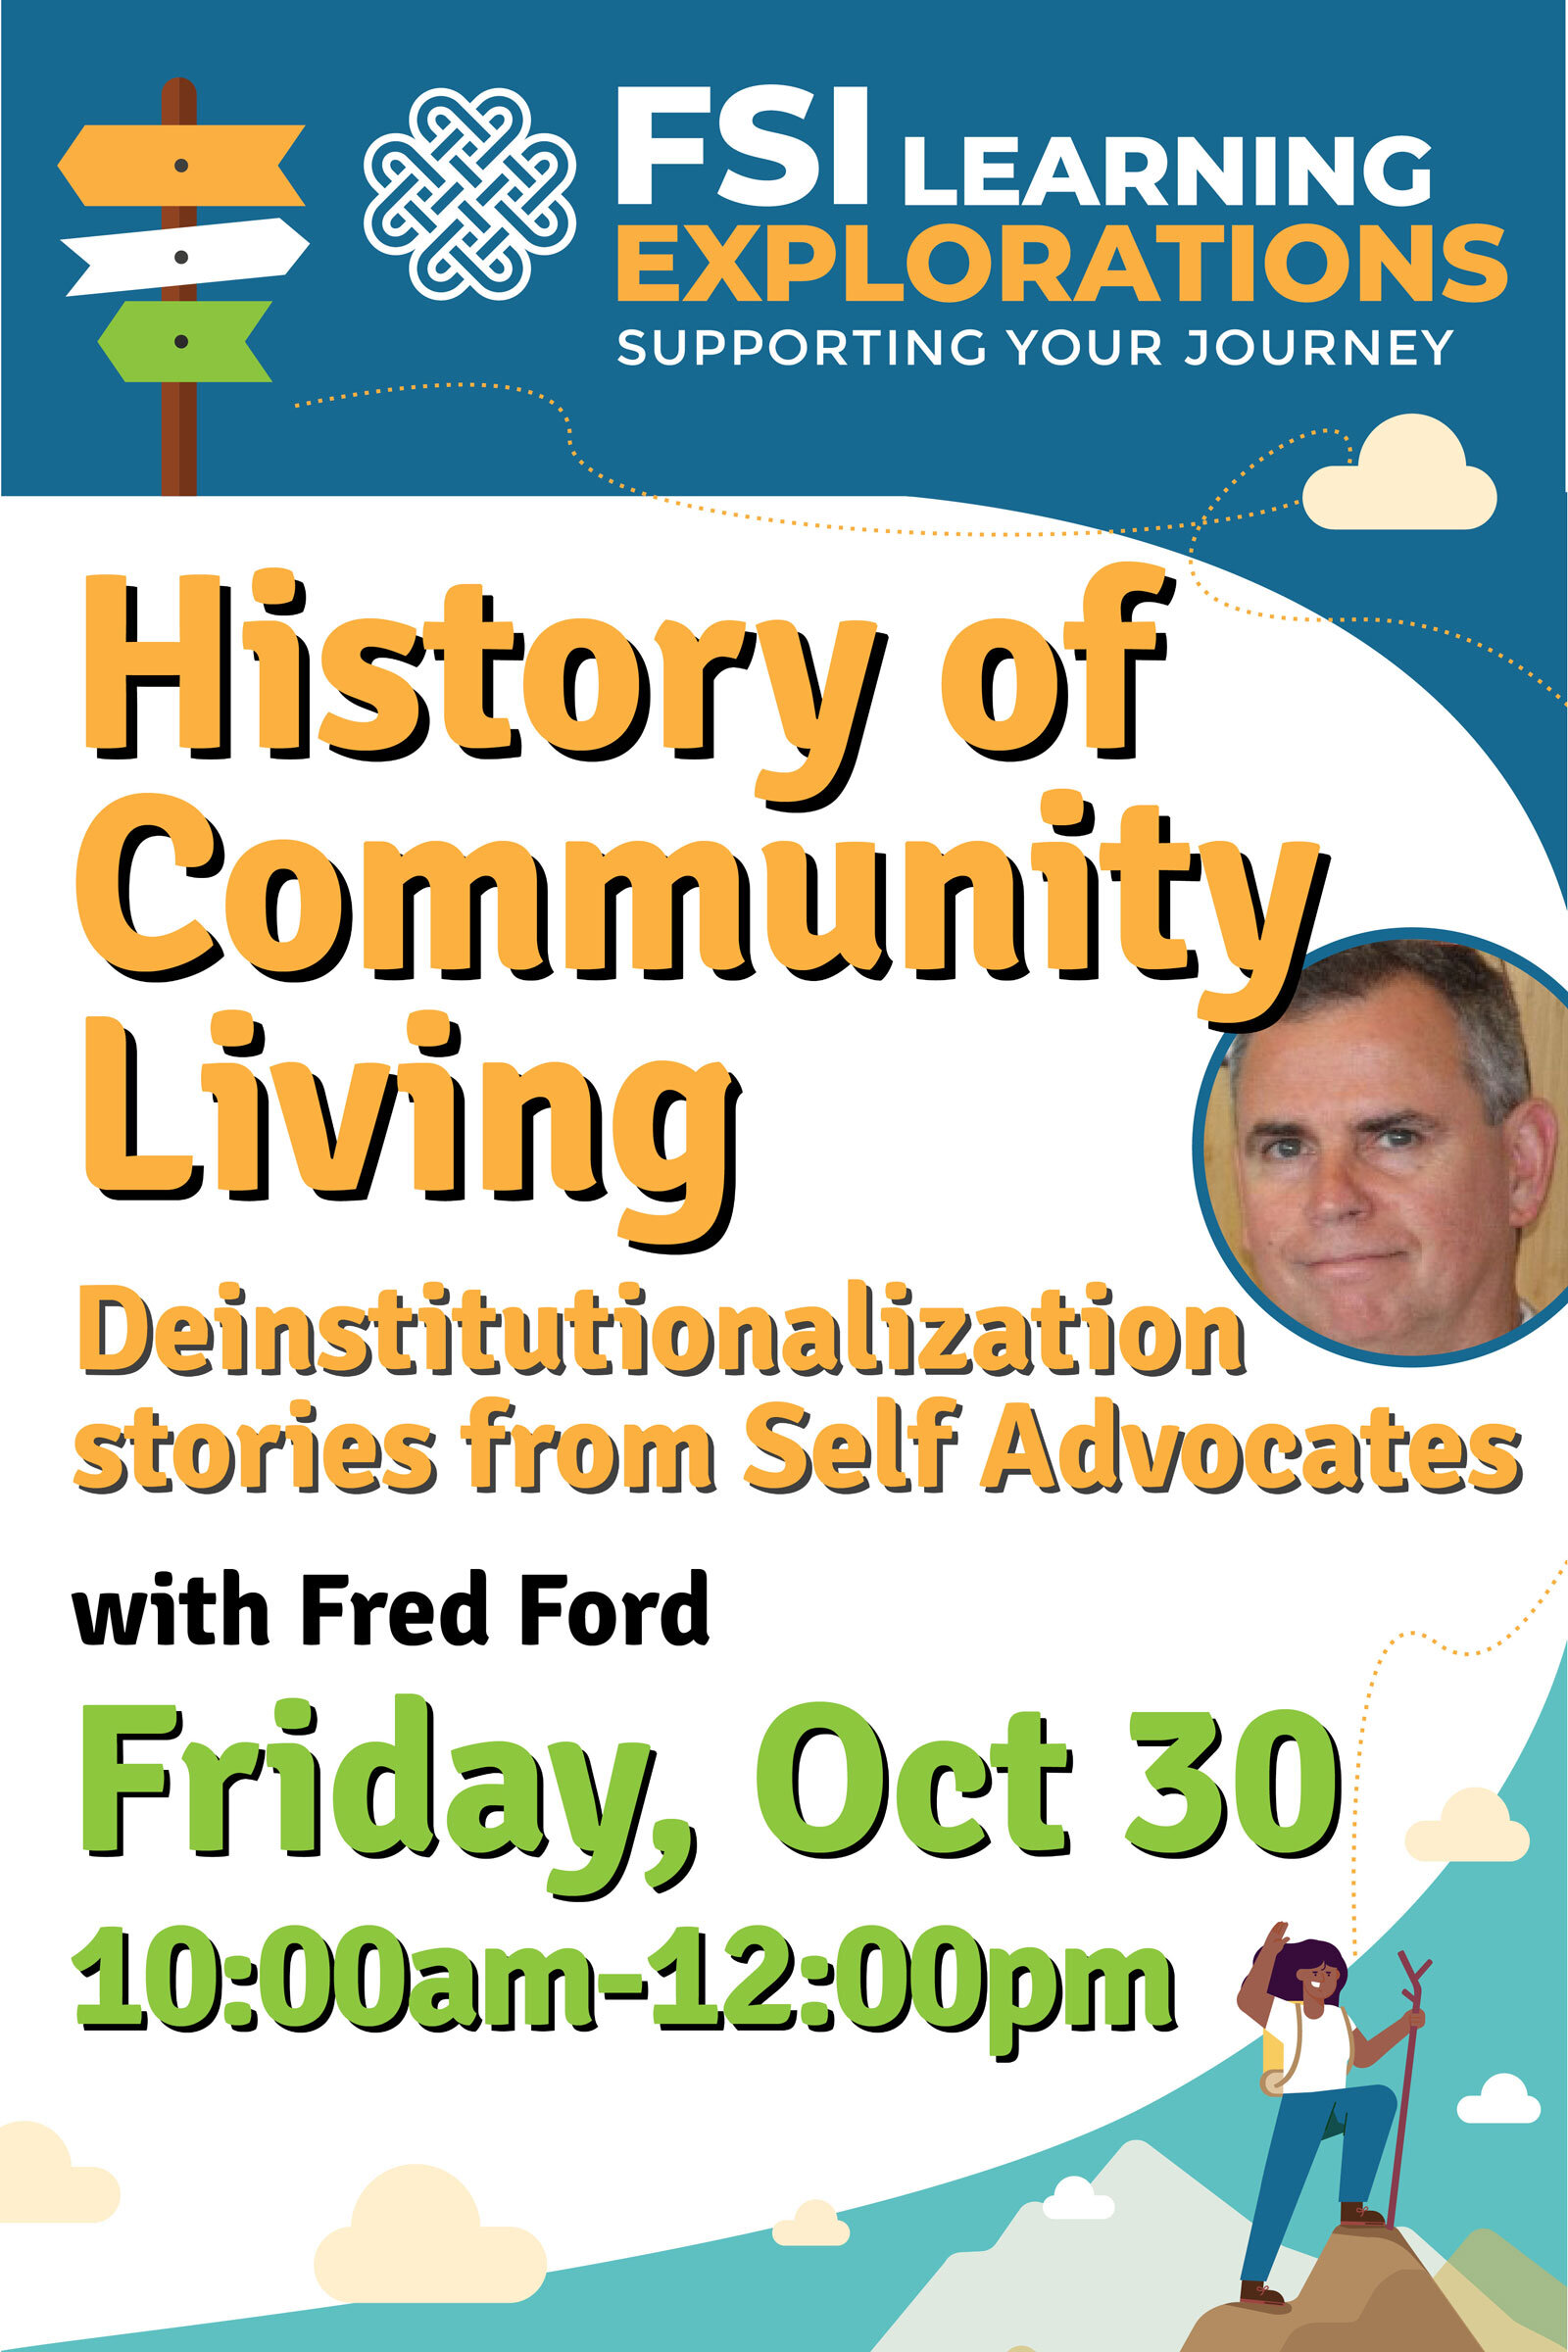 FSI Learning Explorations -History of Community Living - Deinstitutionalization stories from Self Advocates